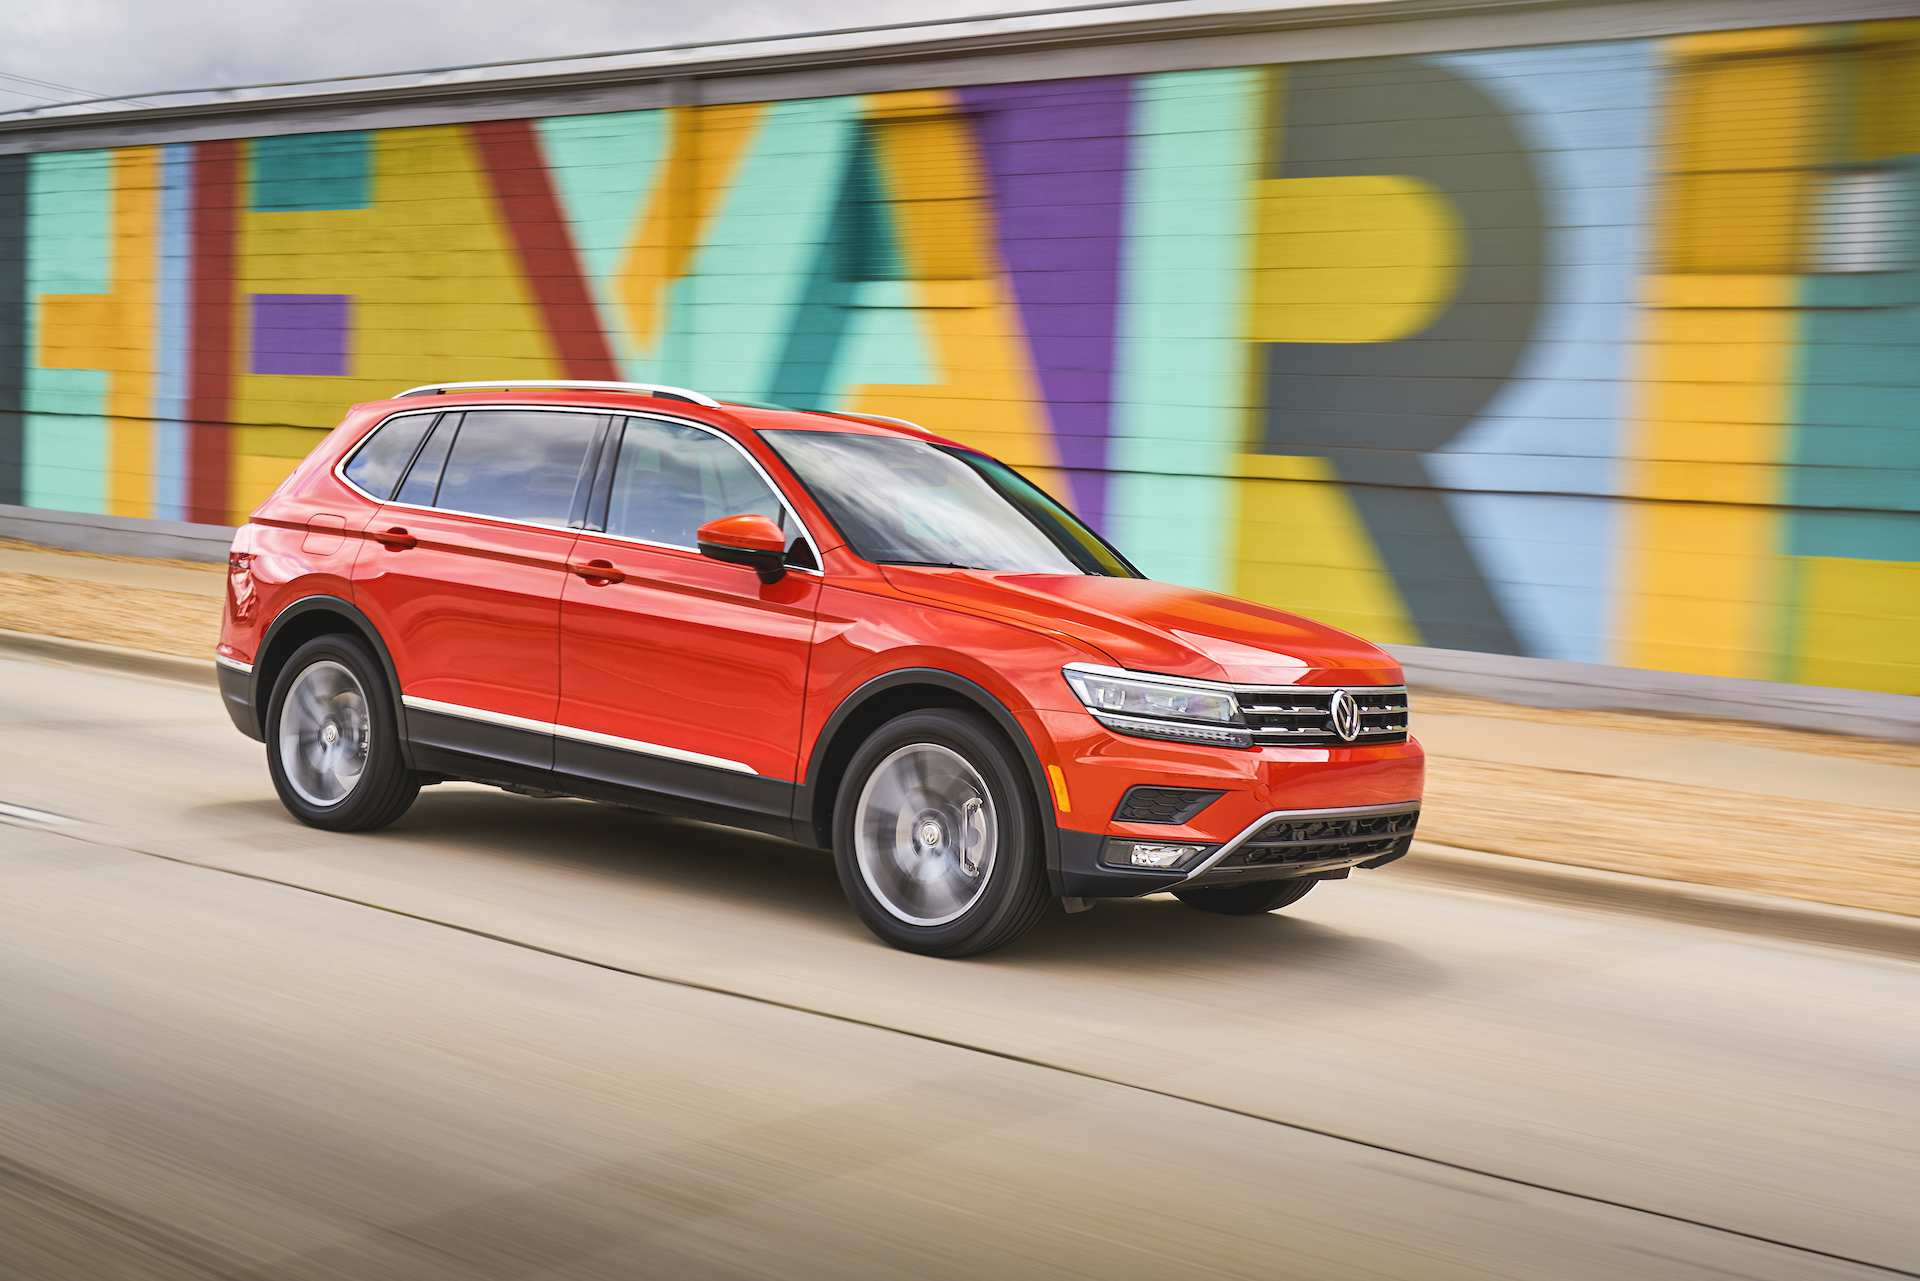 71 All New Volkswagen Tiguan 2020 Speed Test